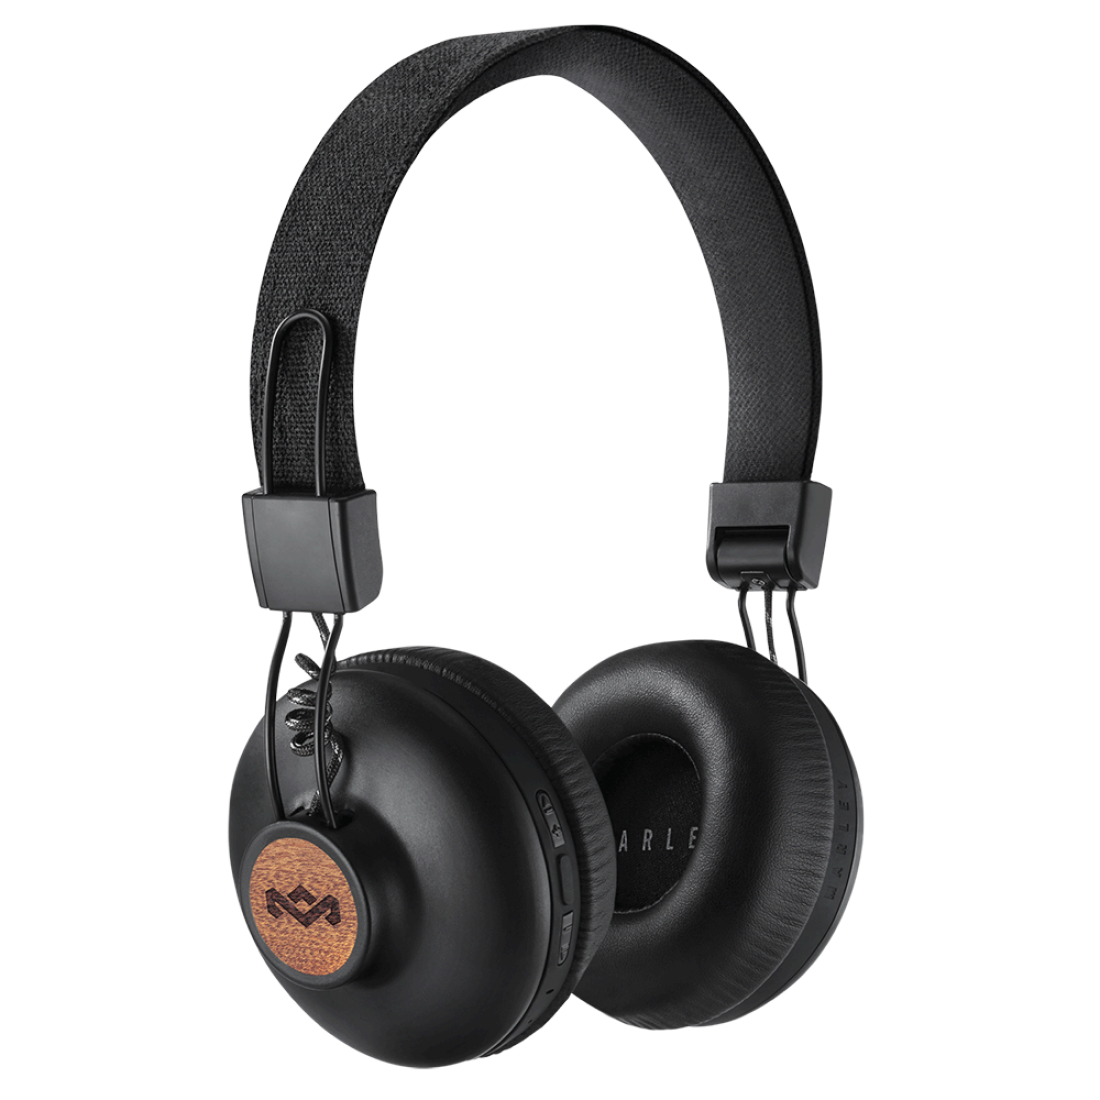 Positive Vibration 2 Wireless Bluetooth Headphones | House of Marley